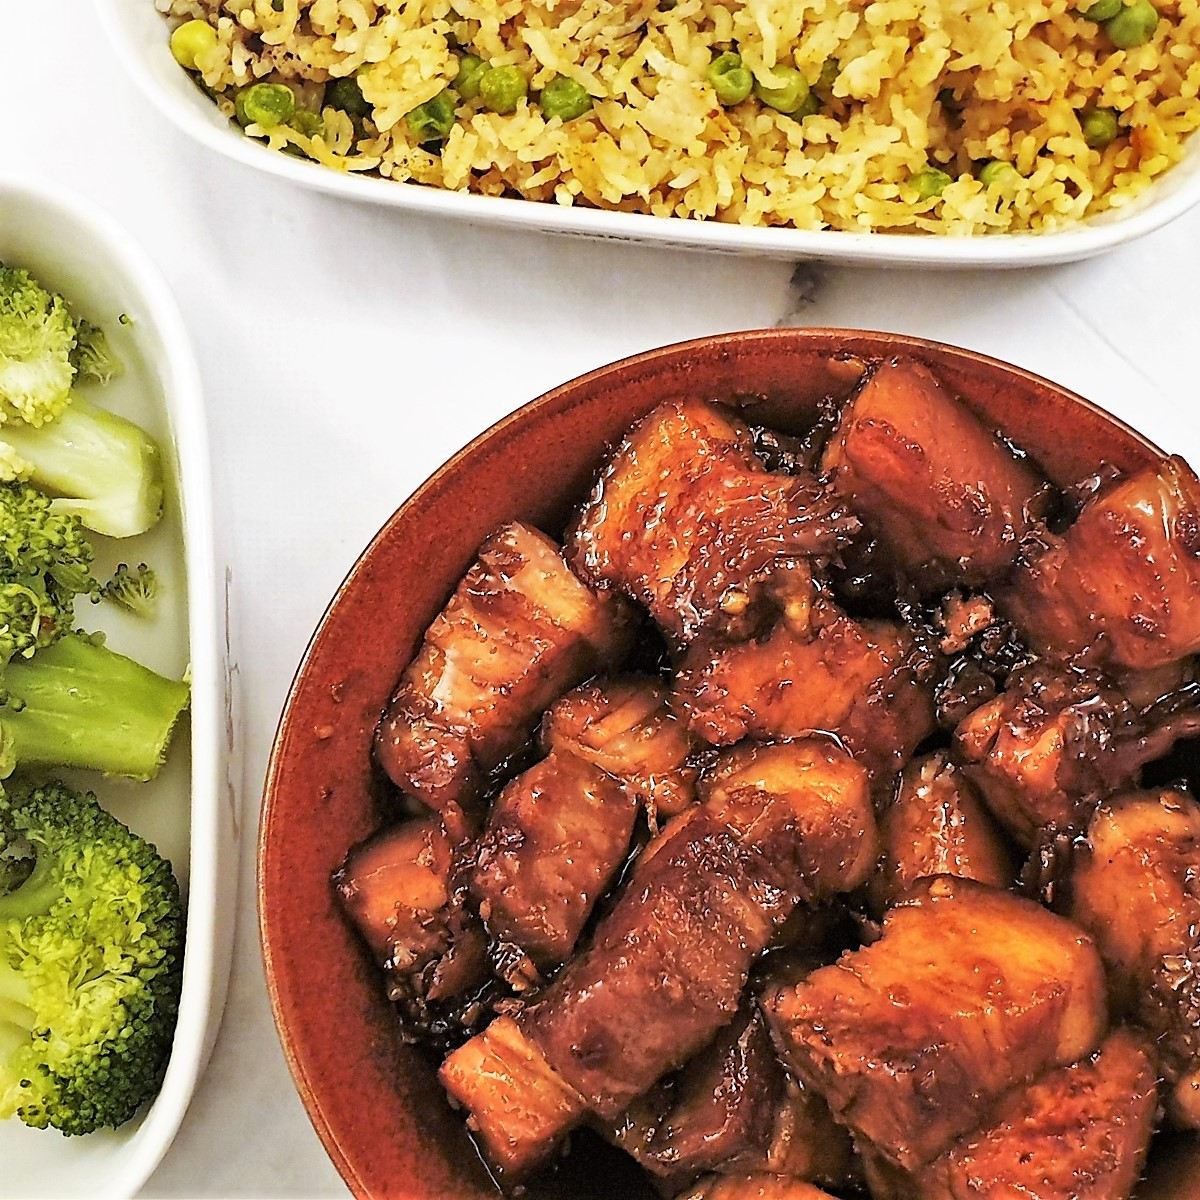 Sticky pork belly pieces next to a dish of fried rice.